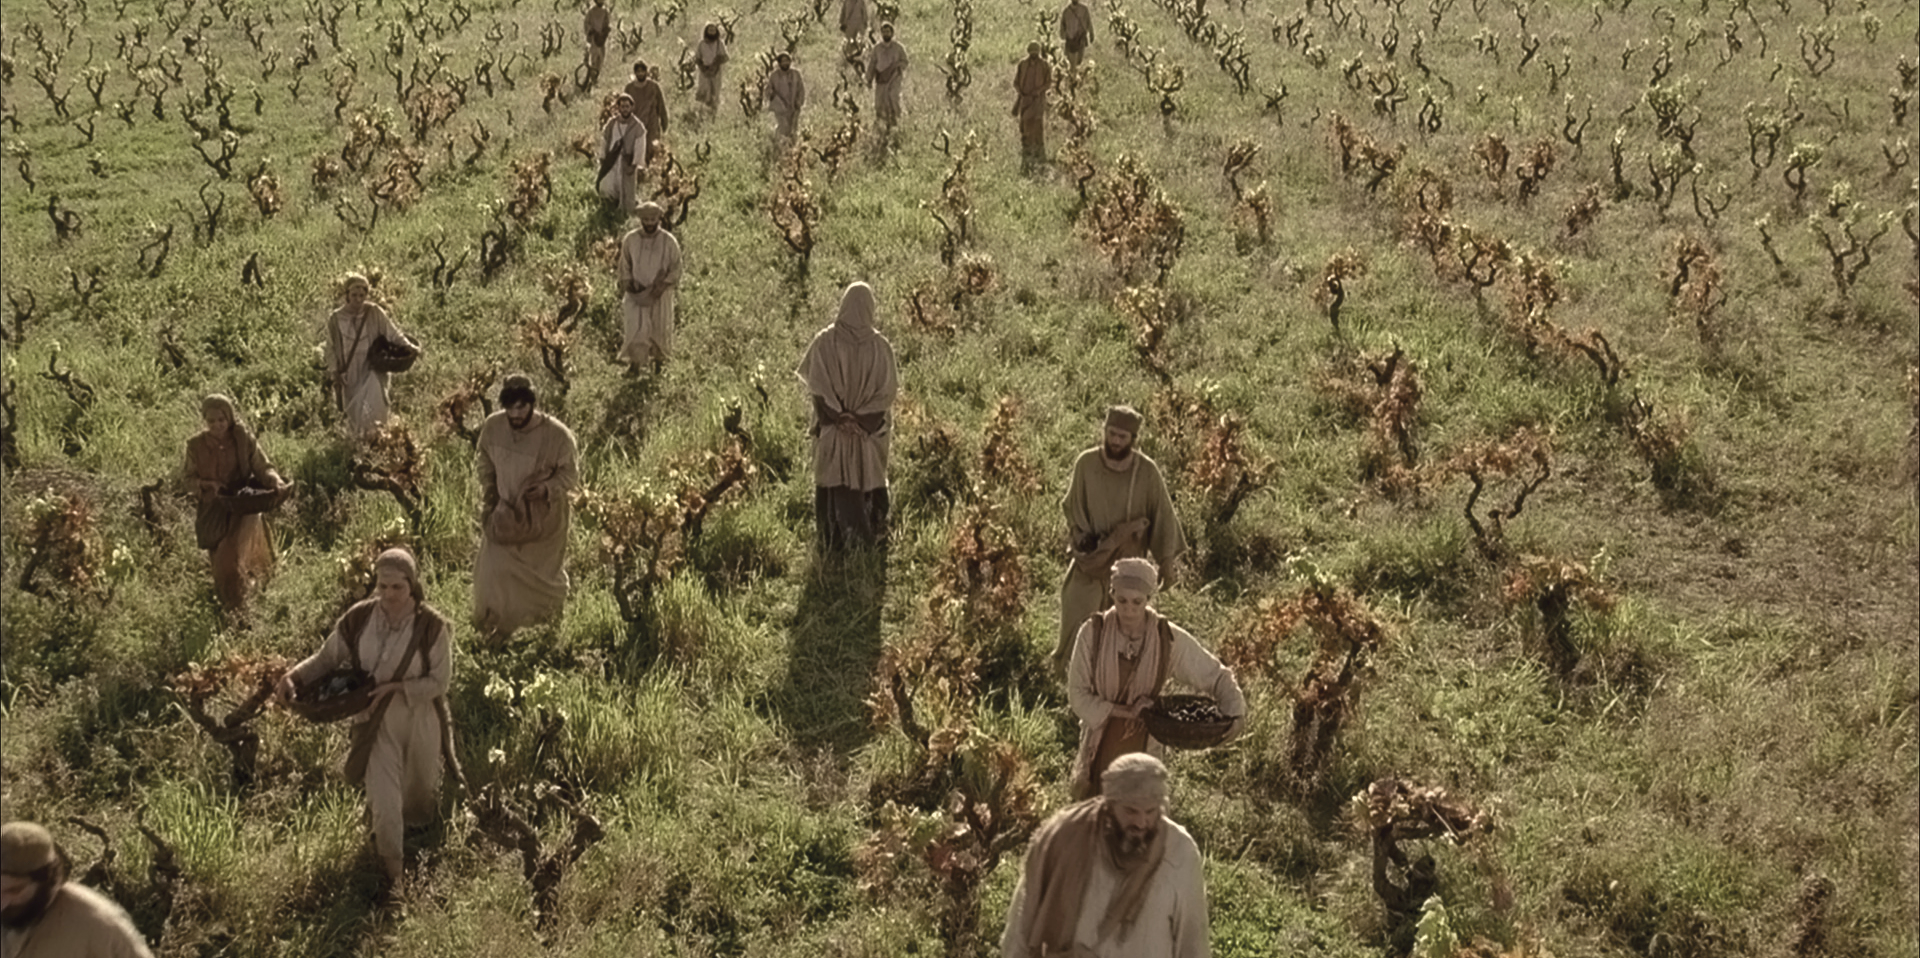 People labor in the vineyard.